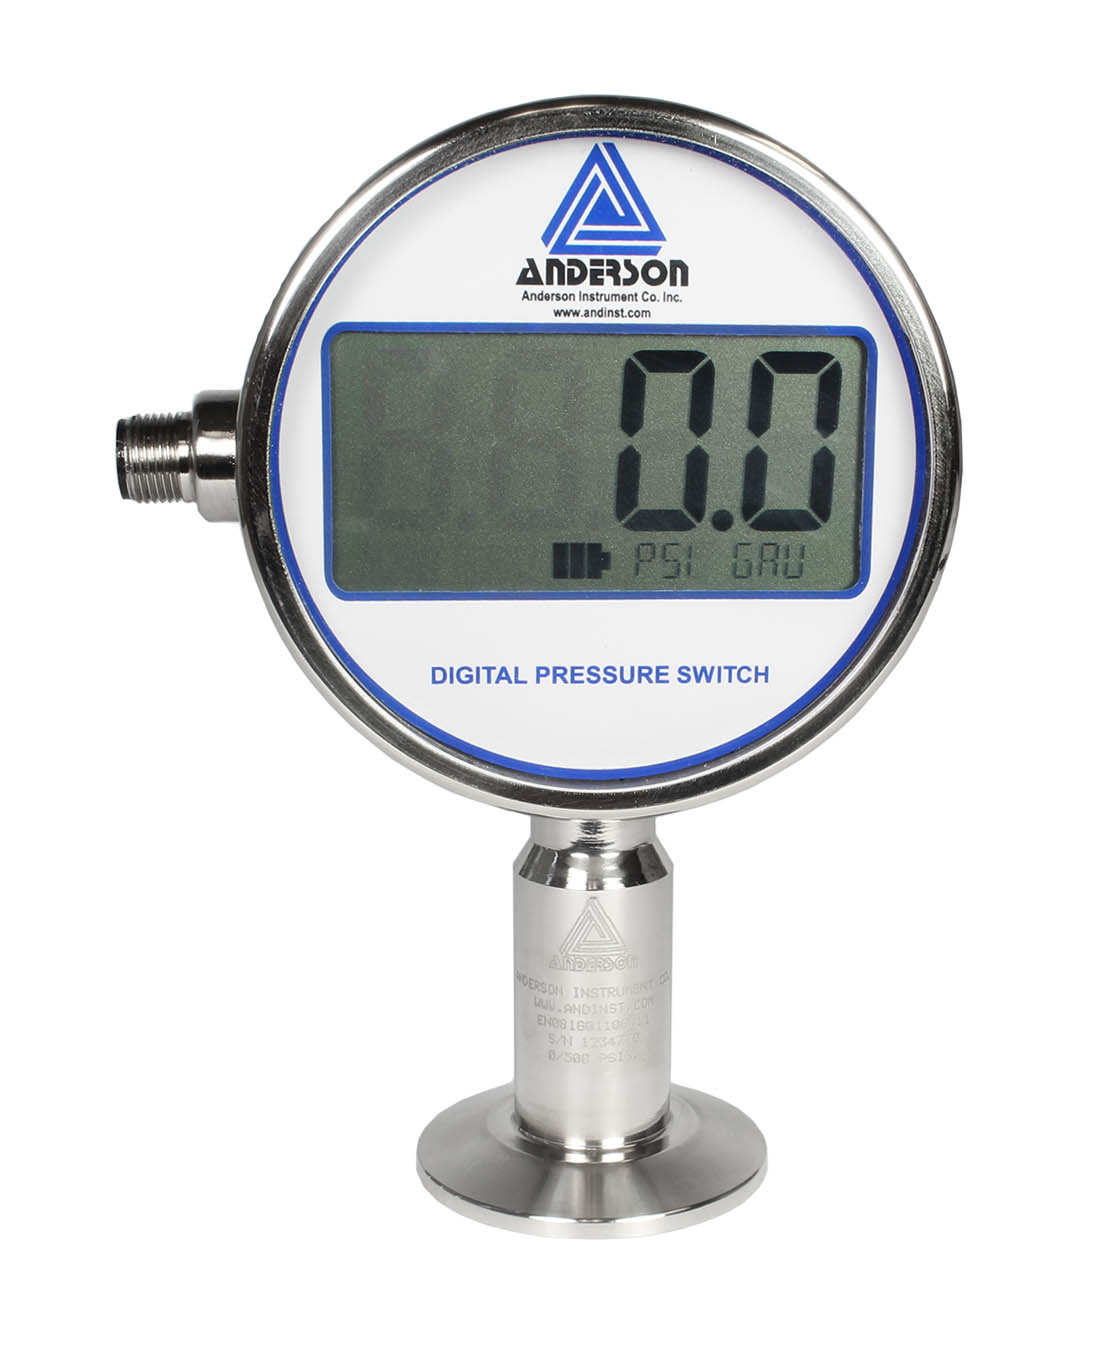 EN DIGITAL PRESSURE GAUGE/SWITCH